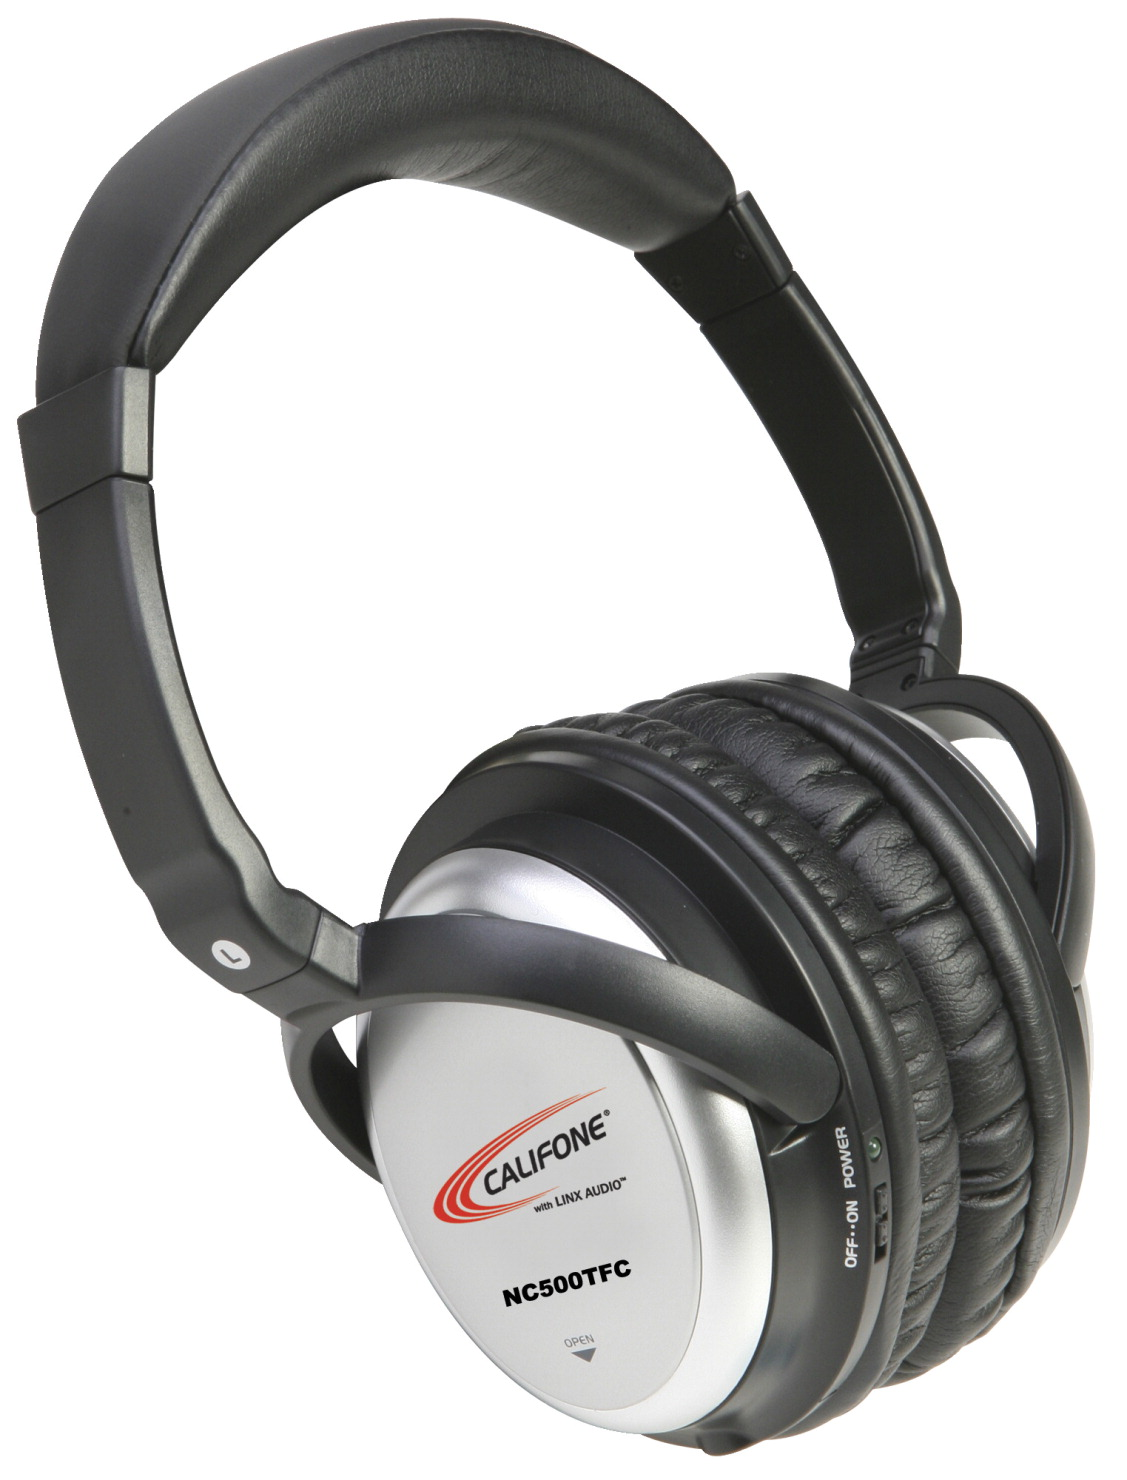 Califone NC500TFC Active Noise Cancelling Headphones with Storage Case